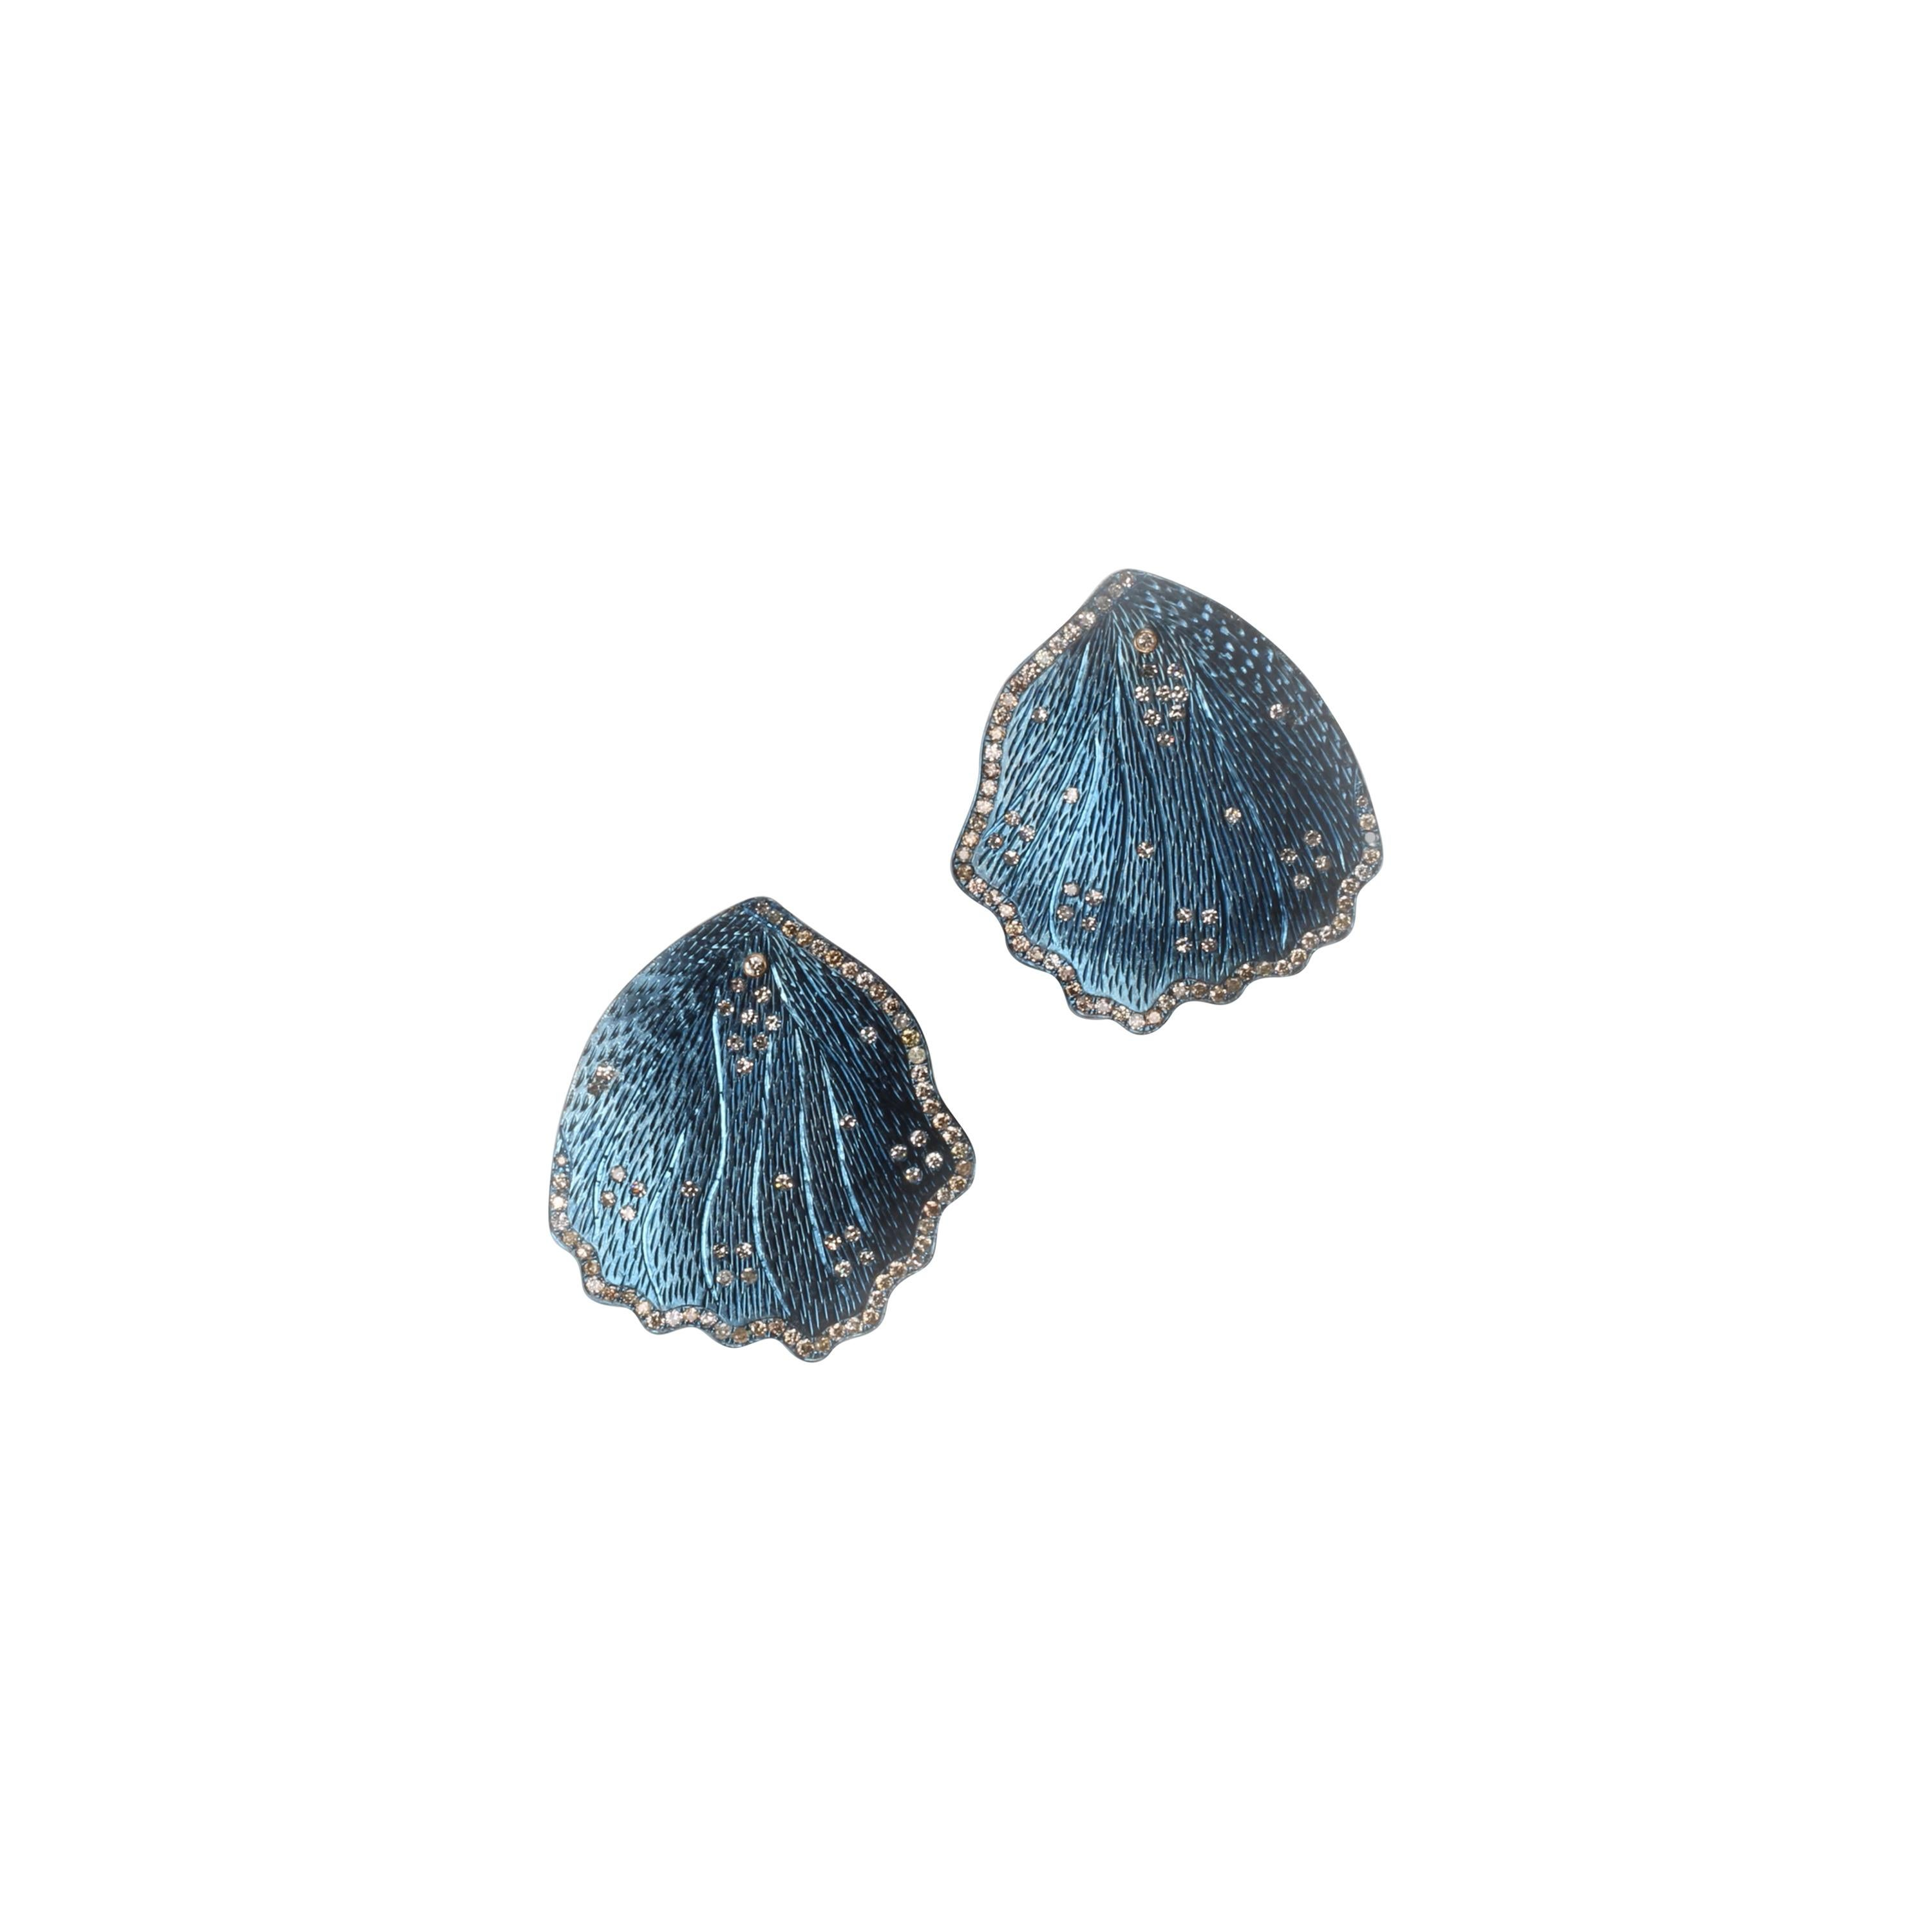 Blue Titanium Petal Earrings with Diamonds and 18kt Gold